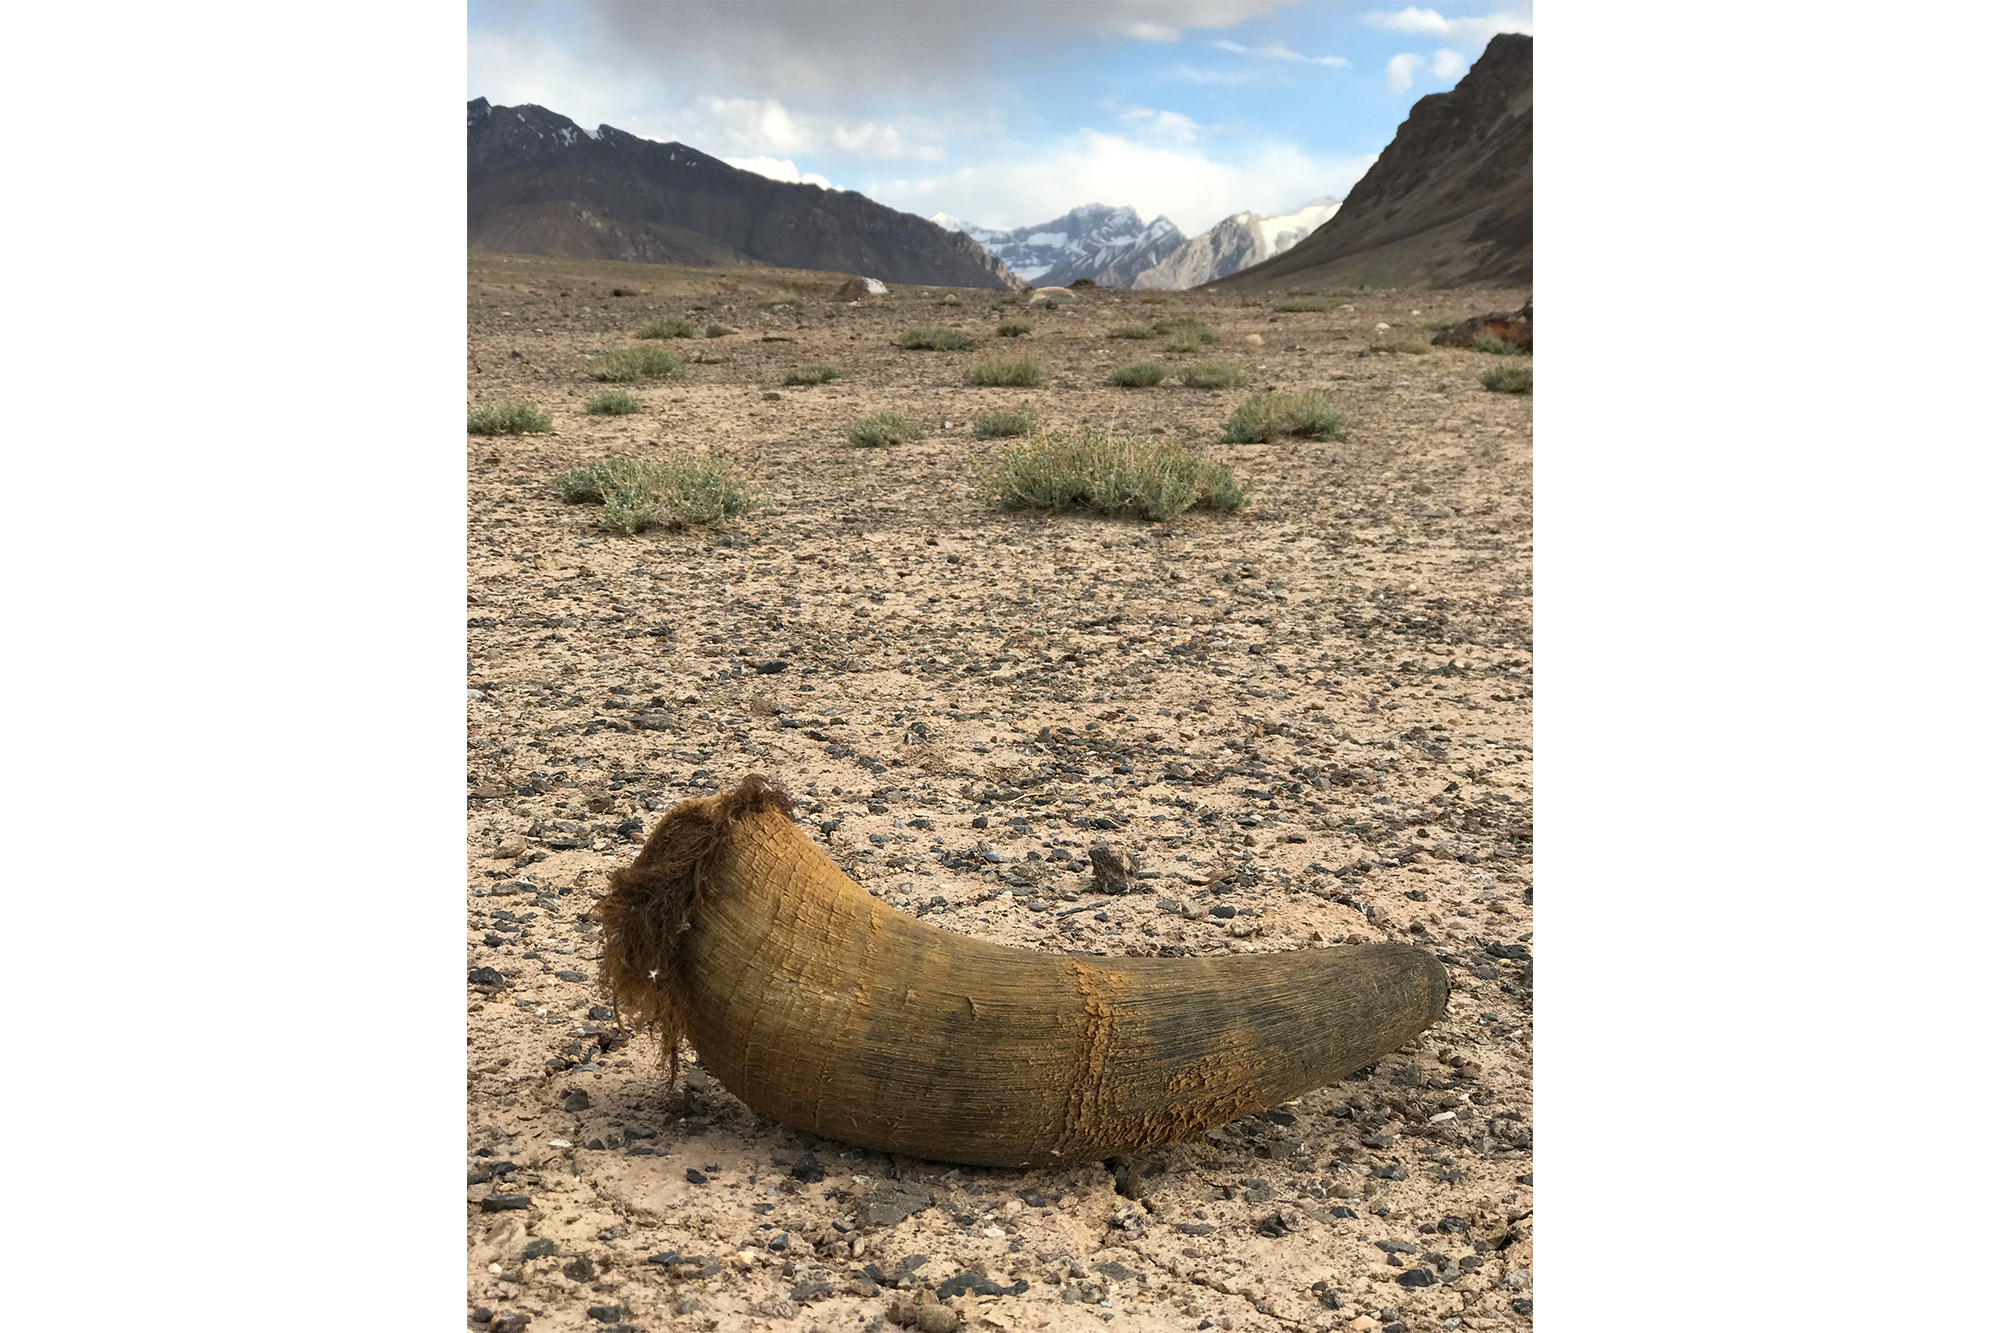 Horn from a Marco Polo sheep.